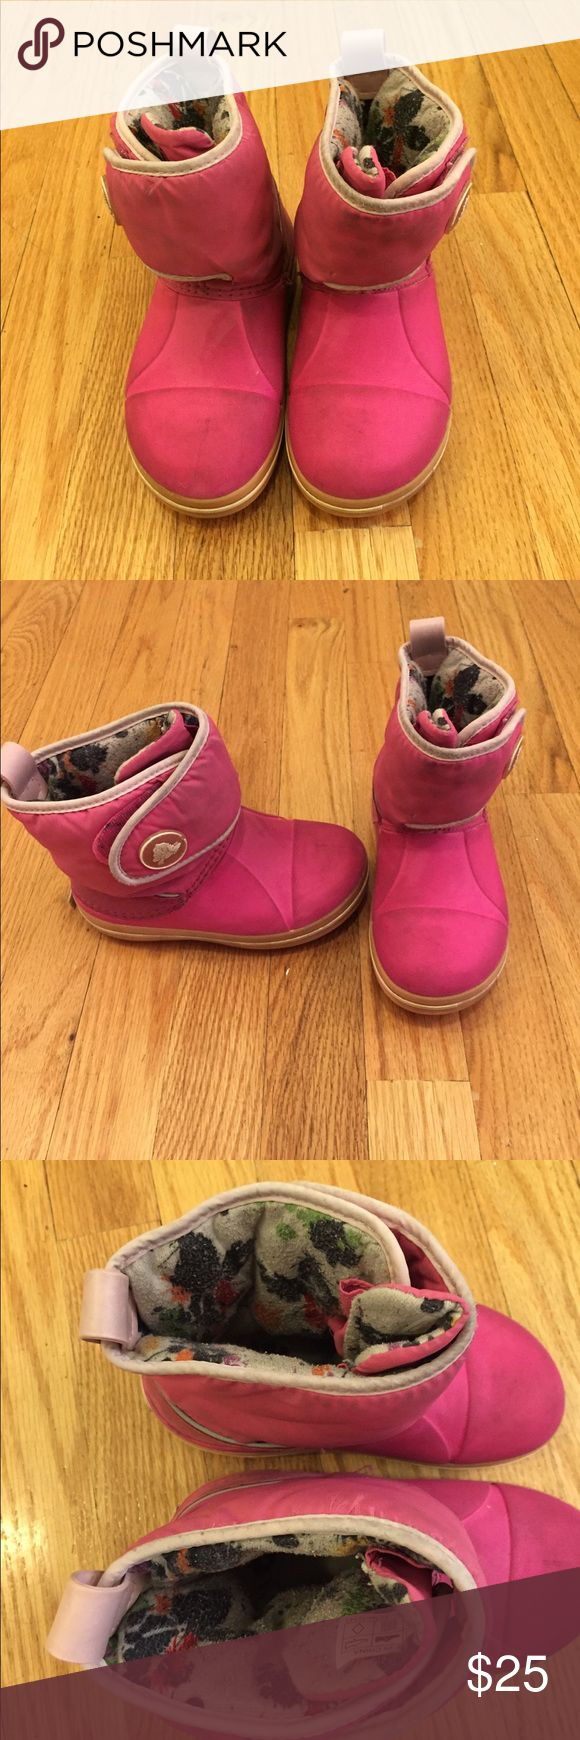 Crocs Snow Boots Pink Crocs winter snow boots with Velcro closure. See photos for wear. Size 11. CROCS Shoes Rain & Snow Boots